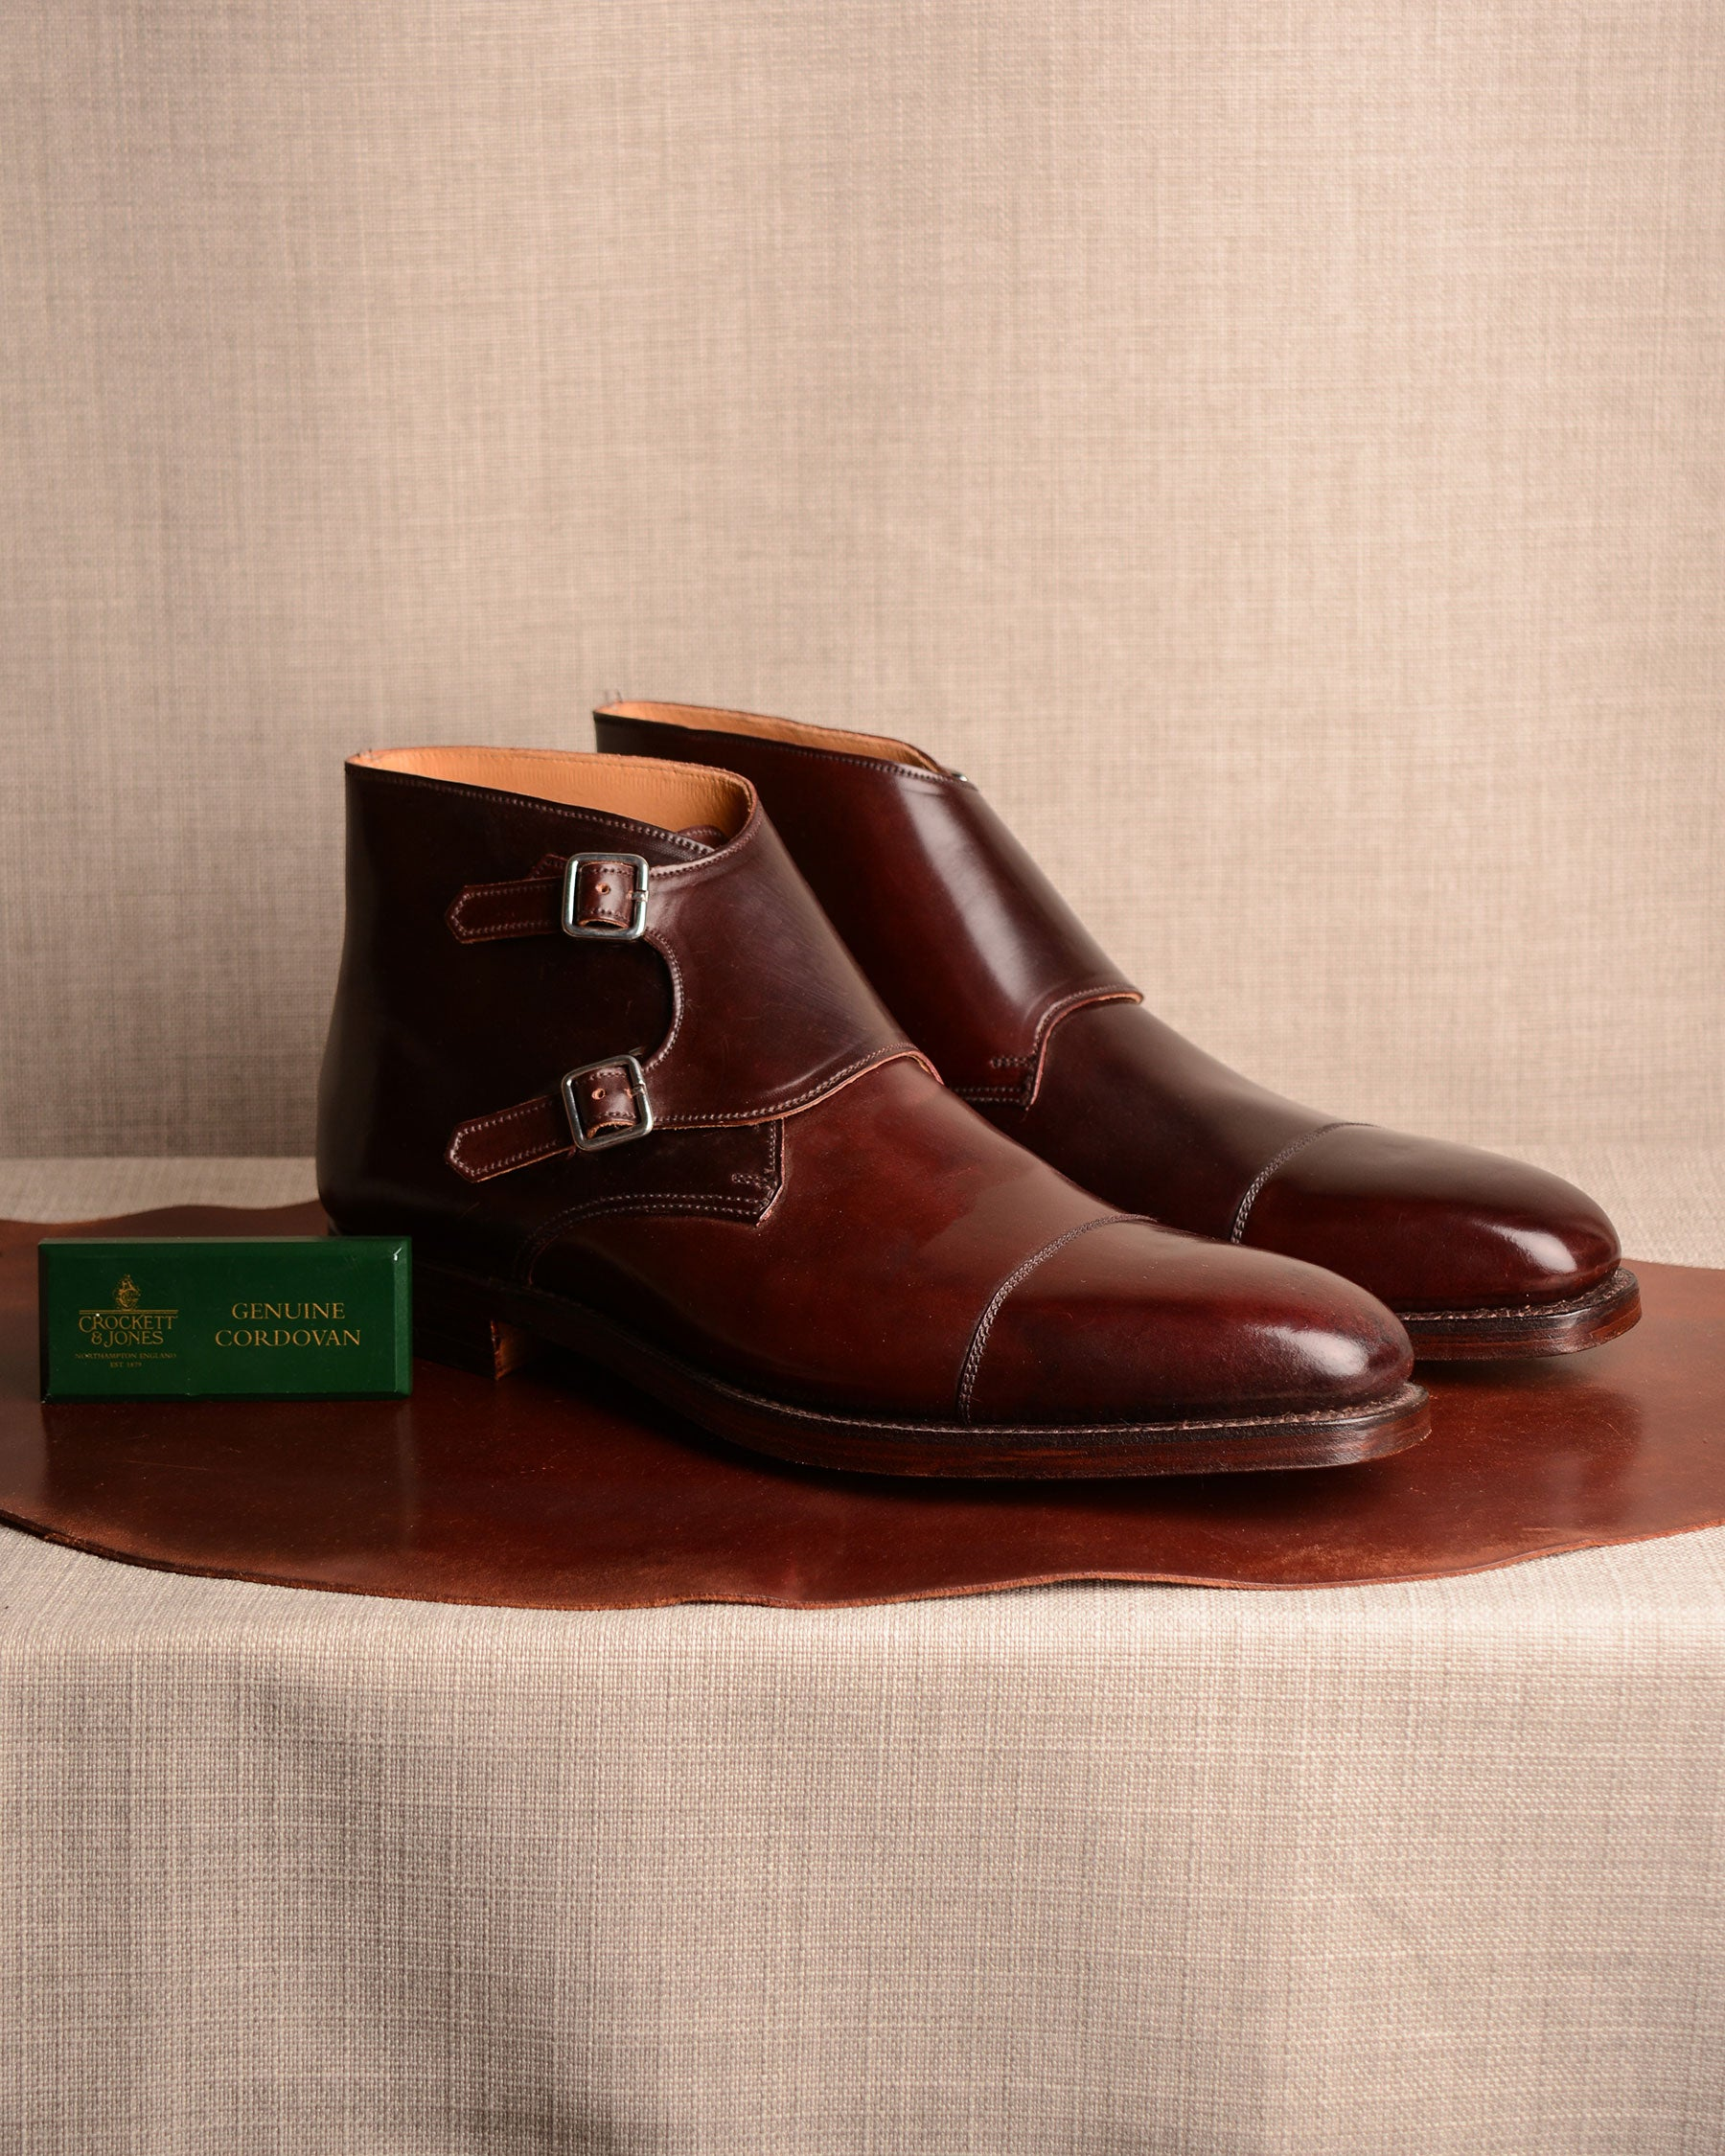 Crockett & Jones Camberley - Col. 8 Cordovan